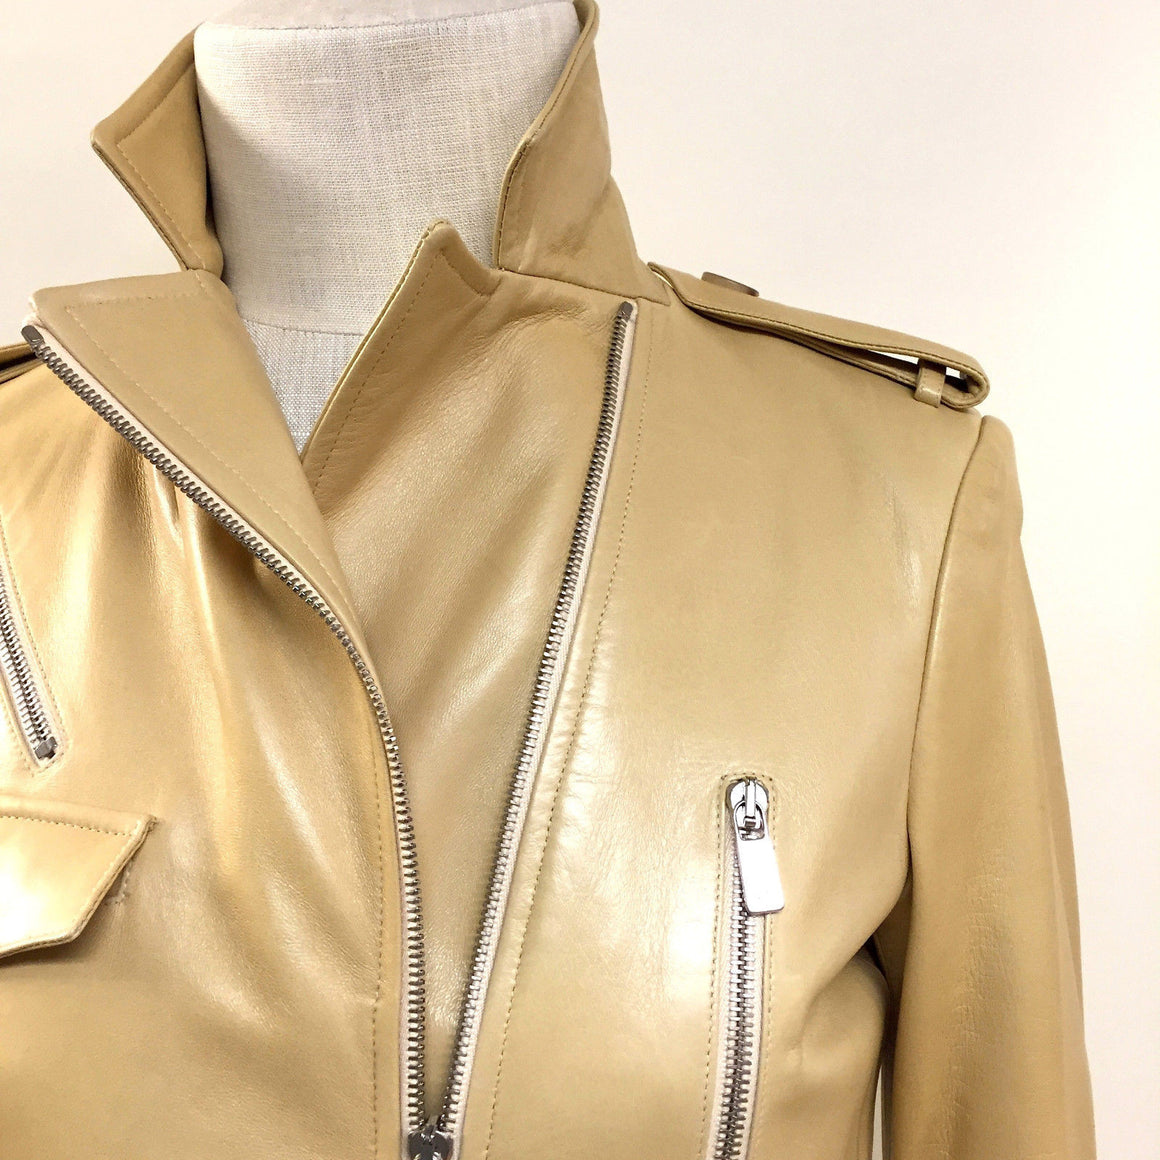 bisbiz.com MICHAEL KORS  Amber Leather Zip Accents Belted Trench Coat - Bis Luxury Resale